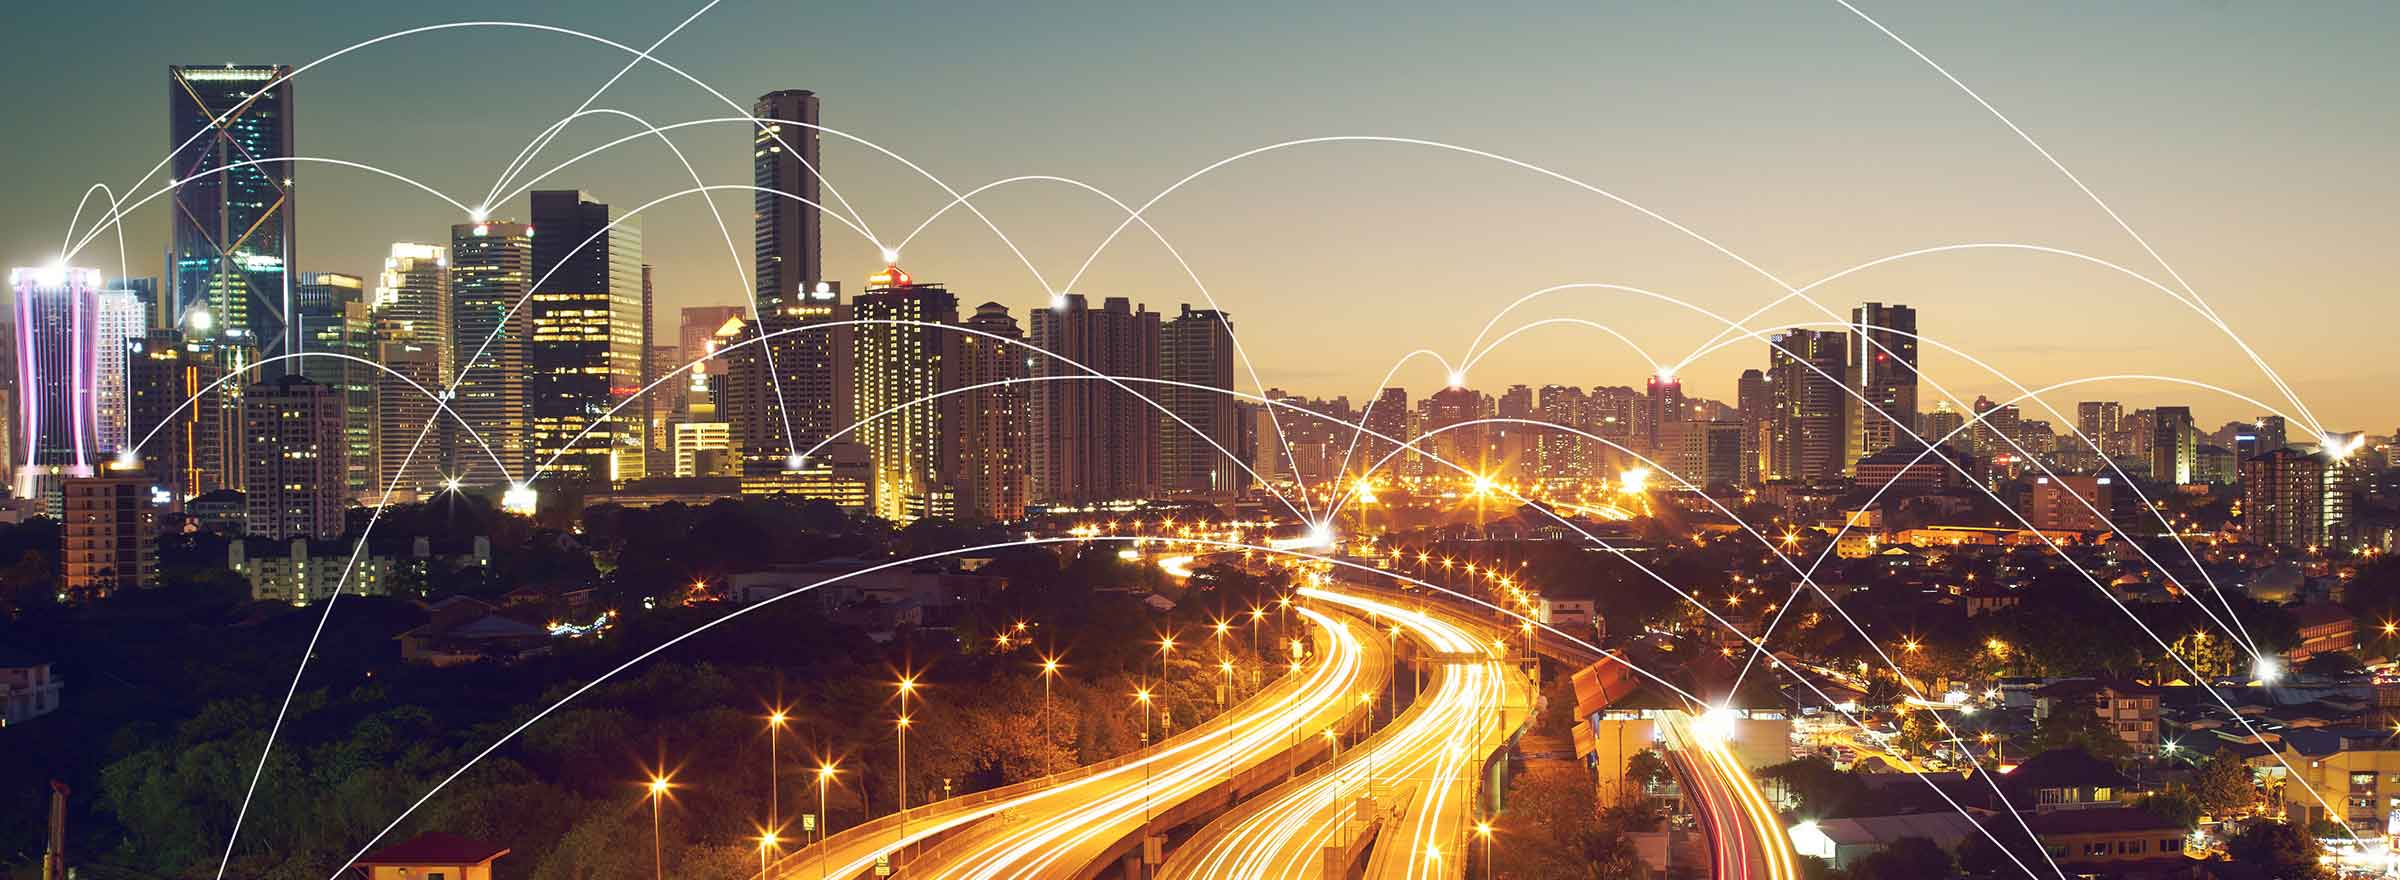 a highway going between skyscrapers with arcs of light connecting buildings, representing the internet and the need to eliminate the digital divide